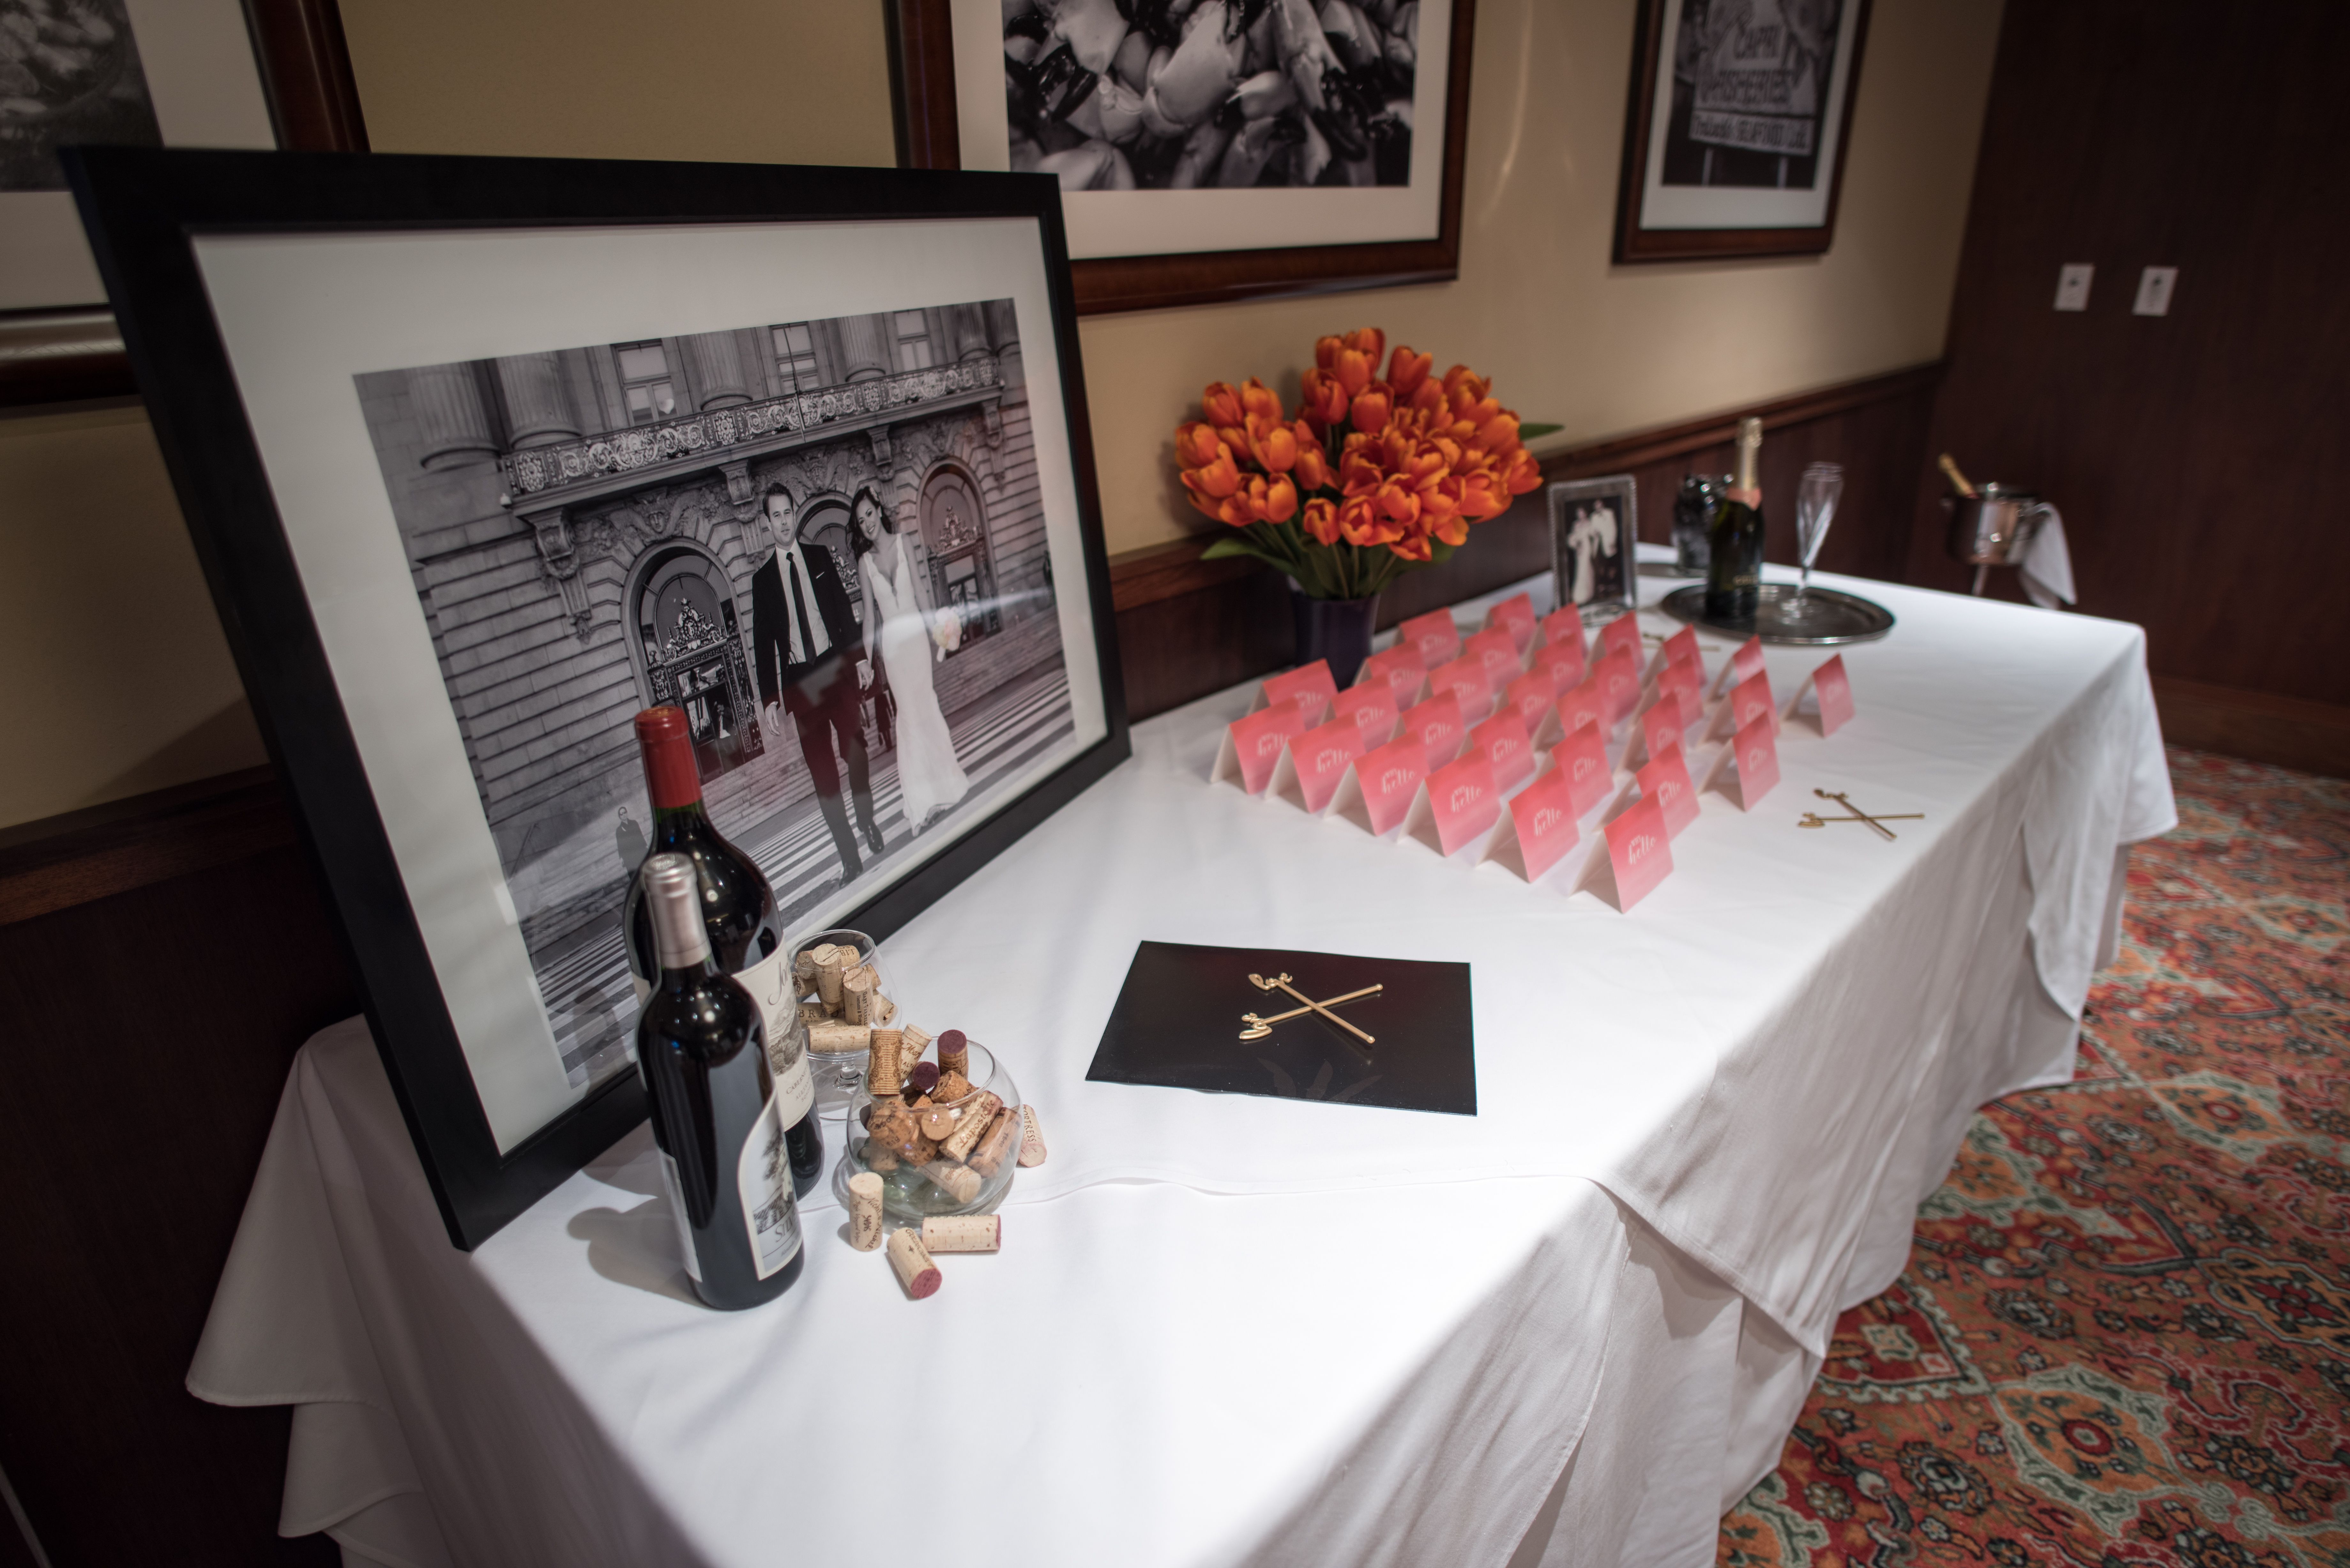 Truluck's Dallas private dining room table display with photo of brde and groom and place cards. this table is dressed with wine bottles and a bouquet of orange tulips